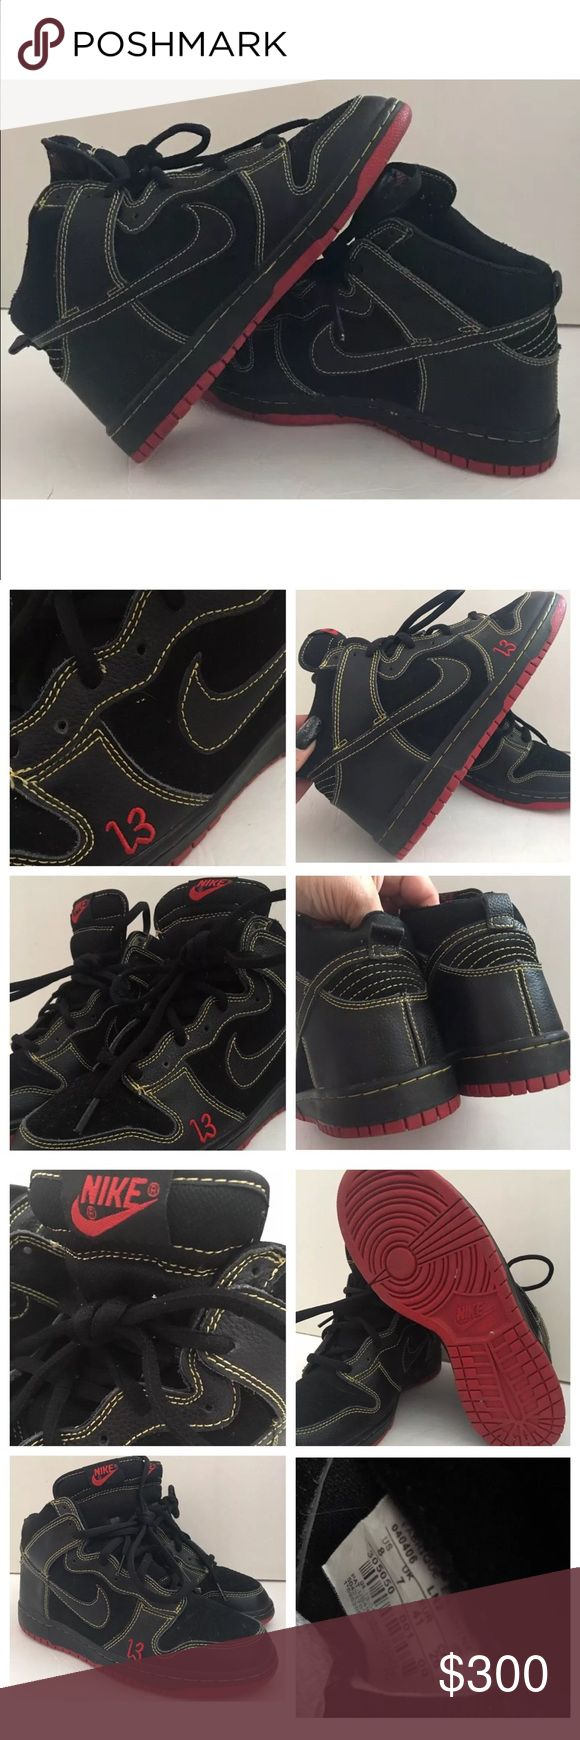 """04 NIKE DUNK HIGH PRO SB """"UNLUCKY"""" FRIDAY THE 13th 2004 """"RARE"""" Authentic Nike Dunk Pro SB """"UNLUCKY"""" Friday The 13th Freddy/Jason Sneakers ! Great Condition as you see in pics ! Had them stored away in box. Don't have original box but I have a box they can be stored in ! Size 8 ! Black/Red/Yellow ! Any Q's just tag me ! Thanks for peeking in my closet ! 😉 Nike Shoes Sneakers"""